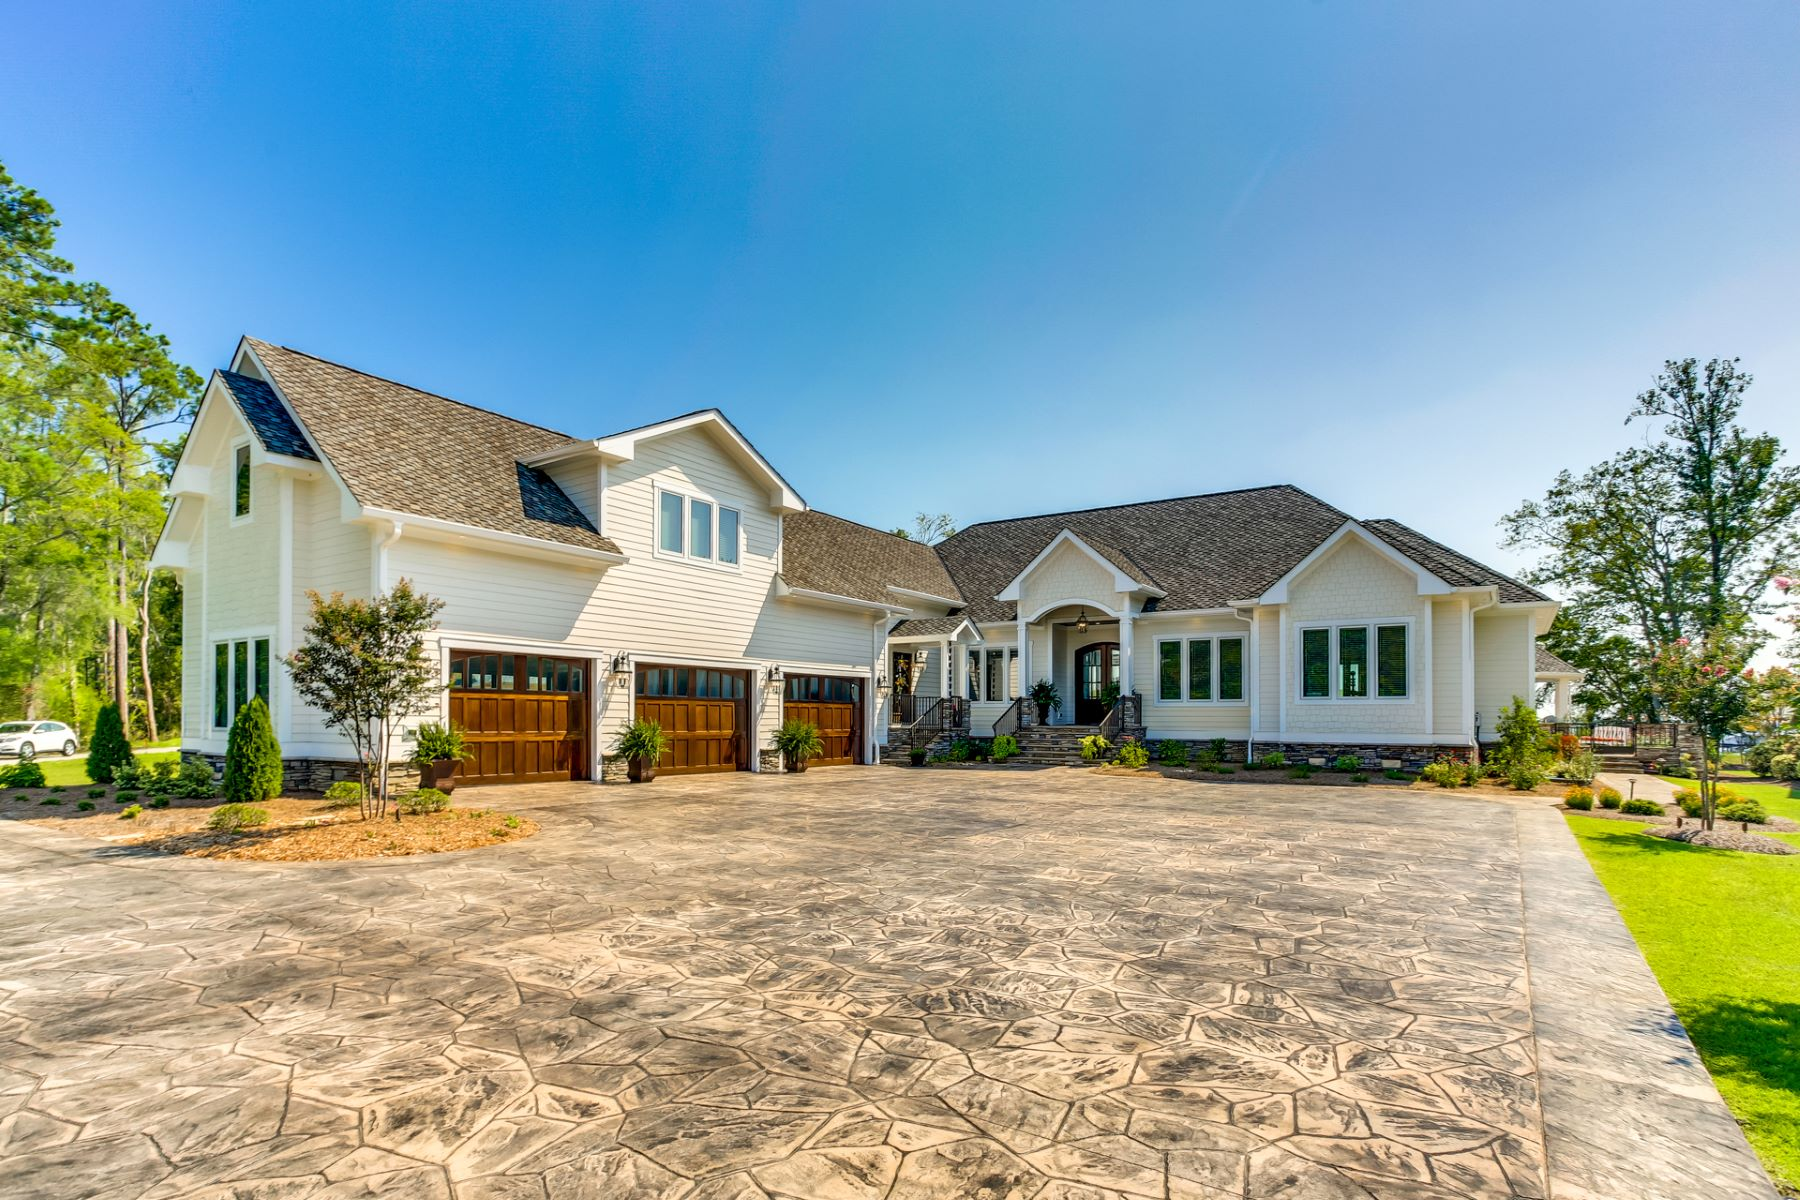 Single Family Homes for Active at Inviting Oasis with Saltwater Pool 34 Sandy Point Drive Lake Waccamaw, North Carolina 28450 United States